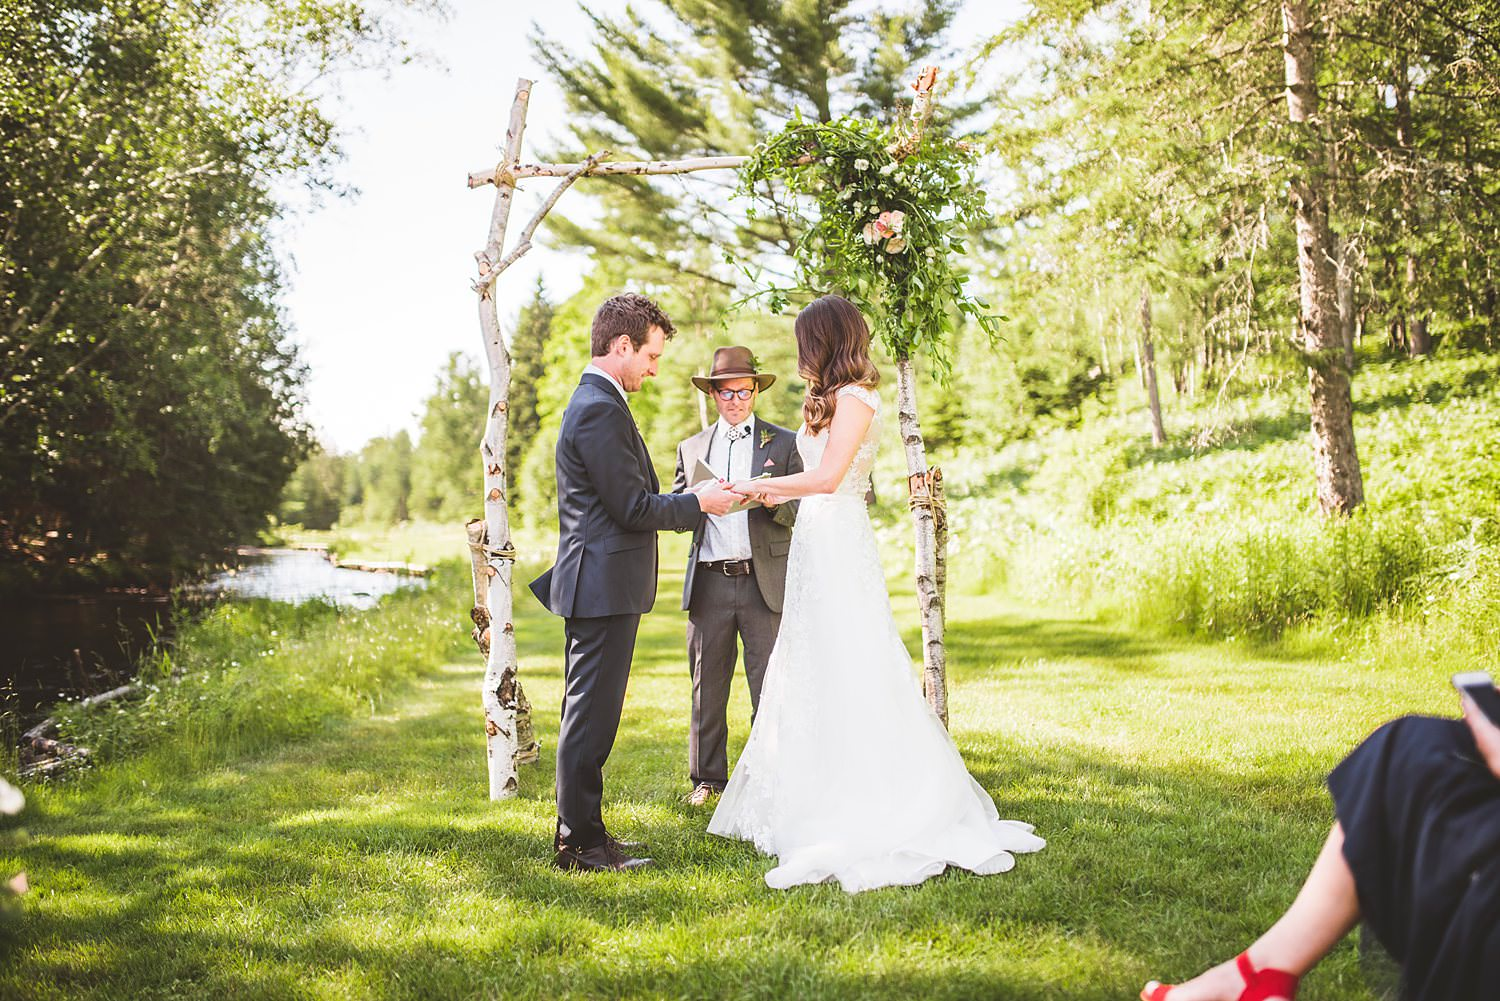 Double K Estate - Petoskey Traverse City - Michigan Wedding Photographer - 156.jpg